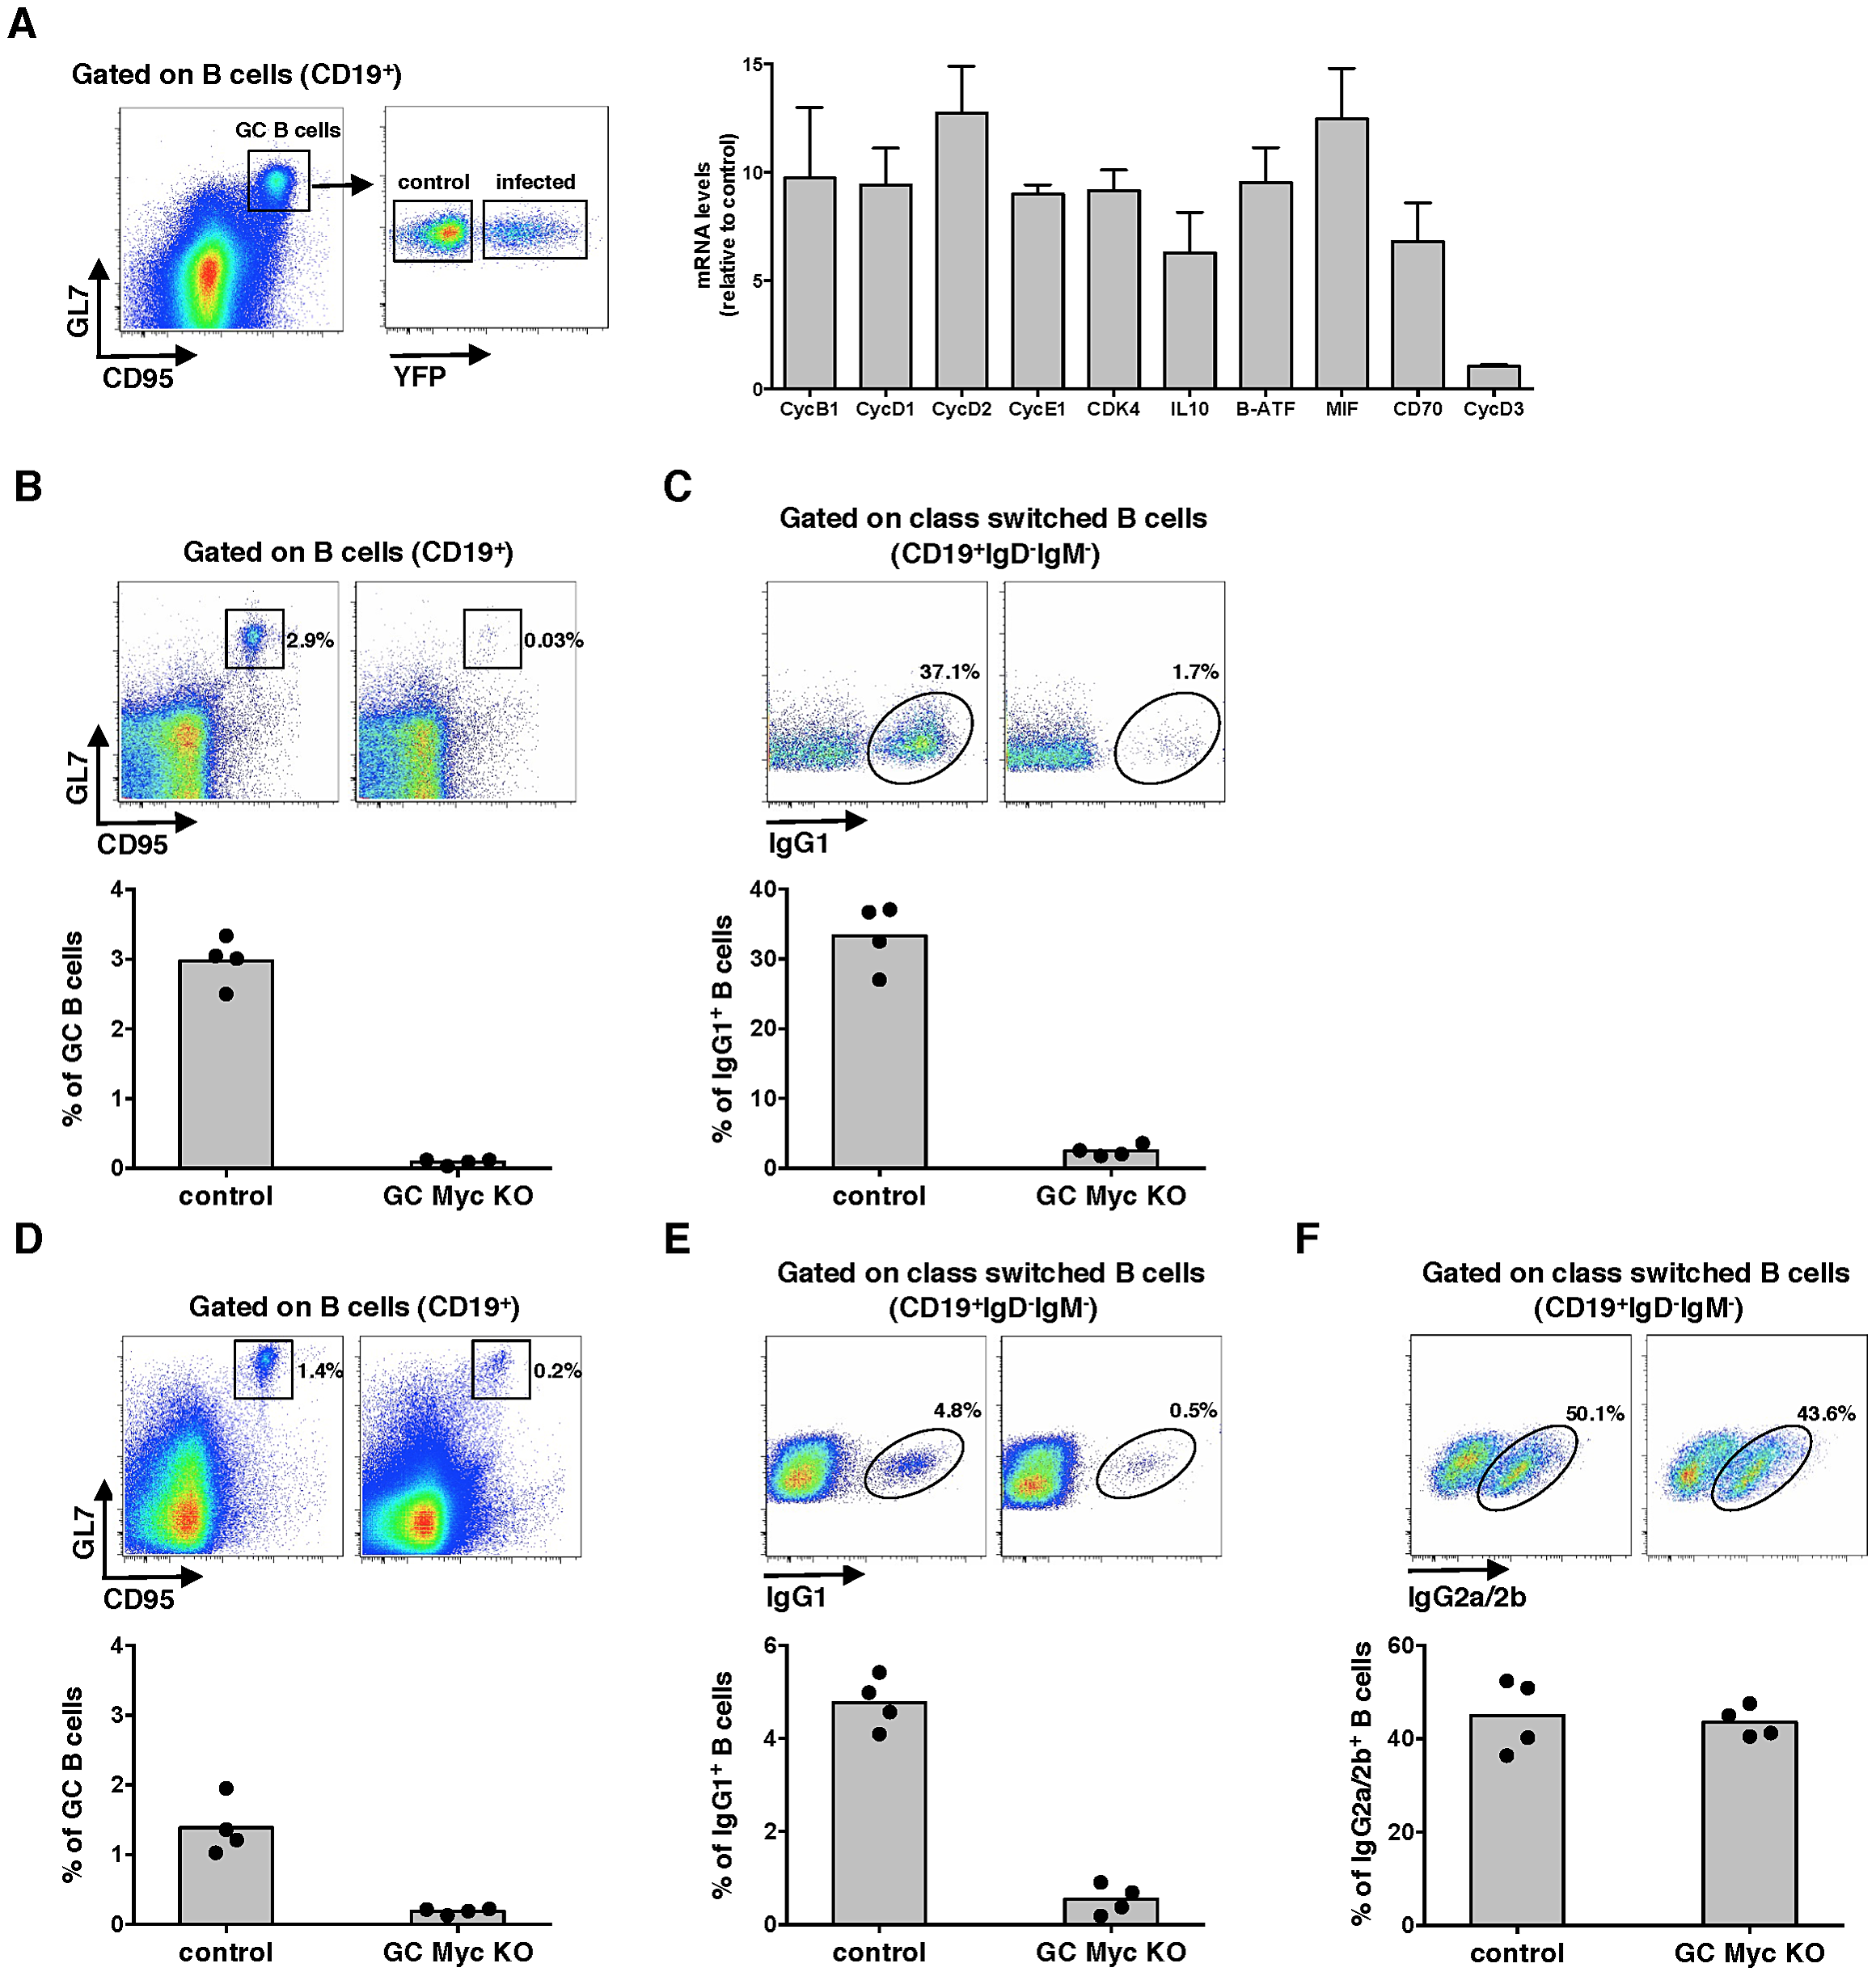 Myc transcriptional activity is upregulated during MuHV-4 latency in GC cells.